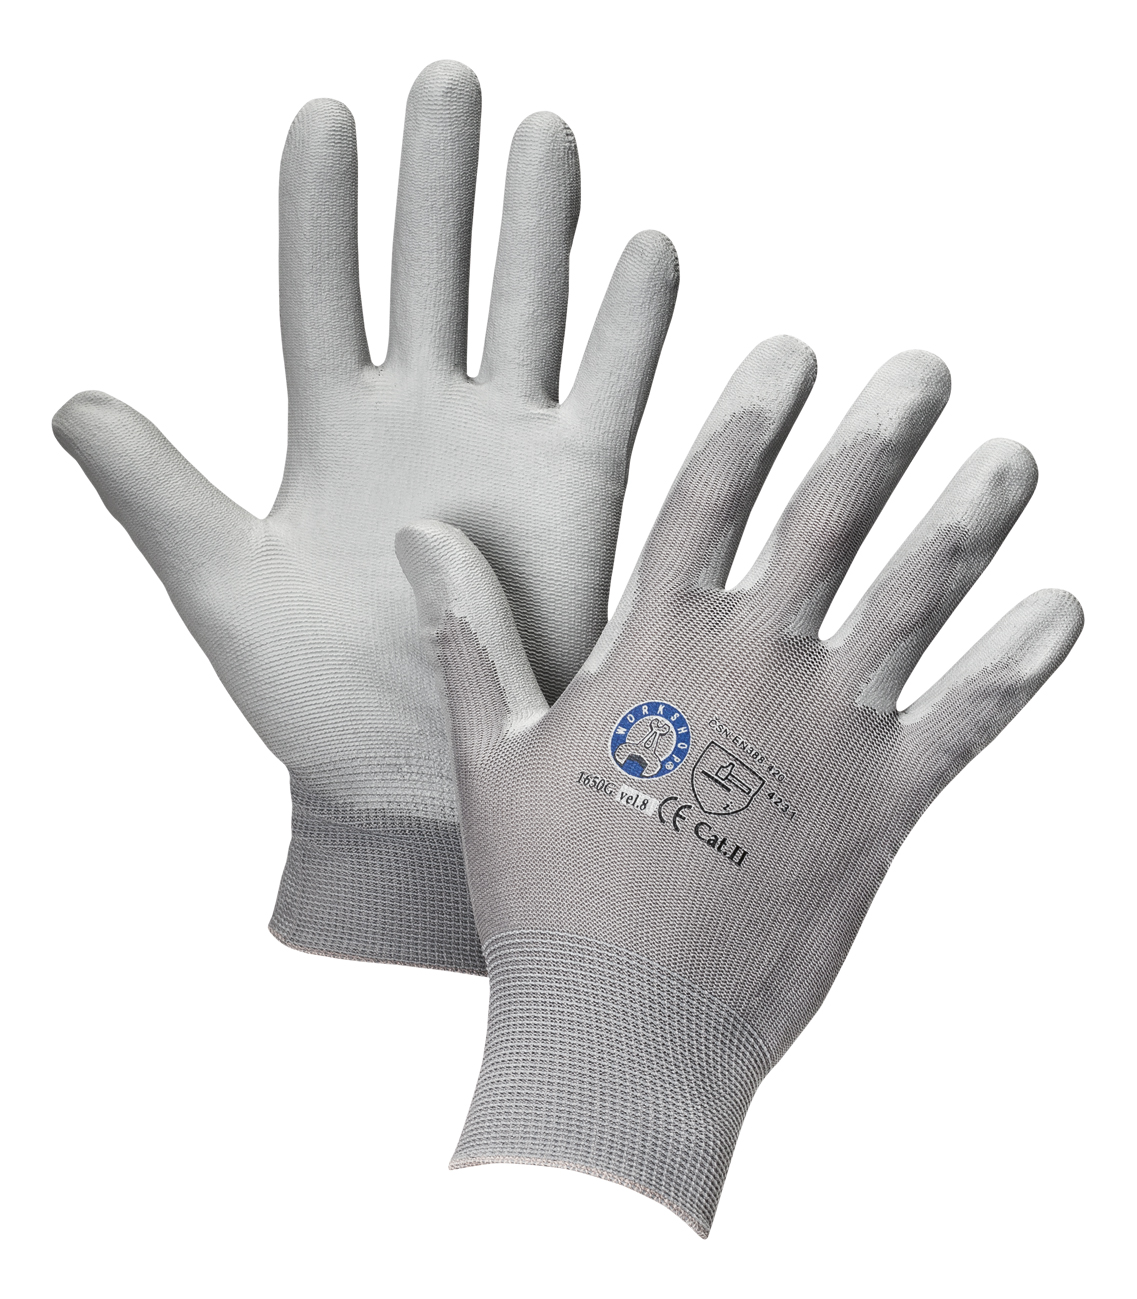 AERO Gloves PurtSkin Grey 1762, with Polyurethane Coating